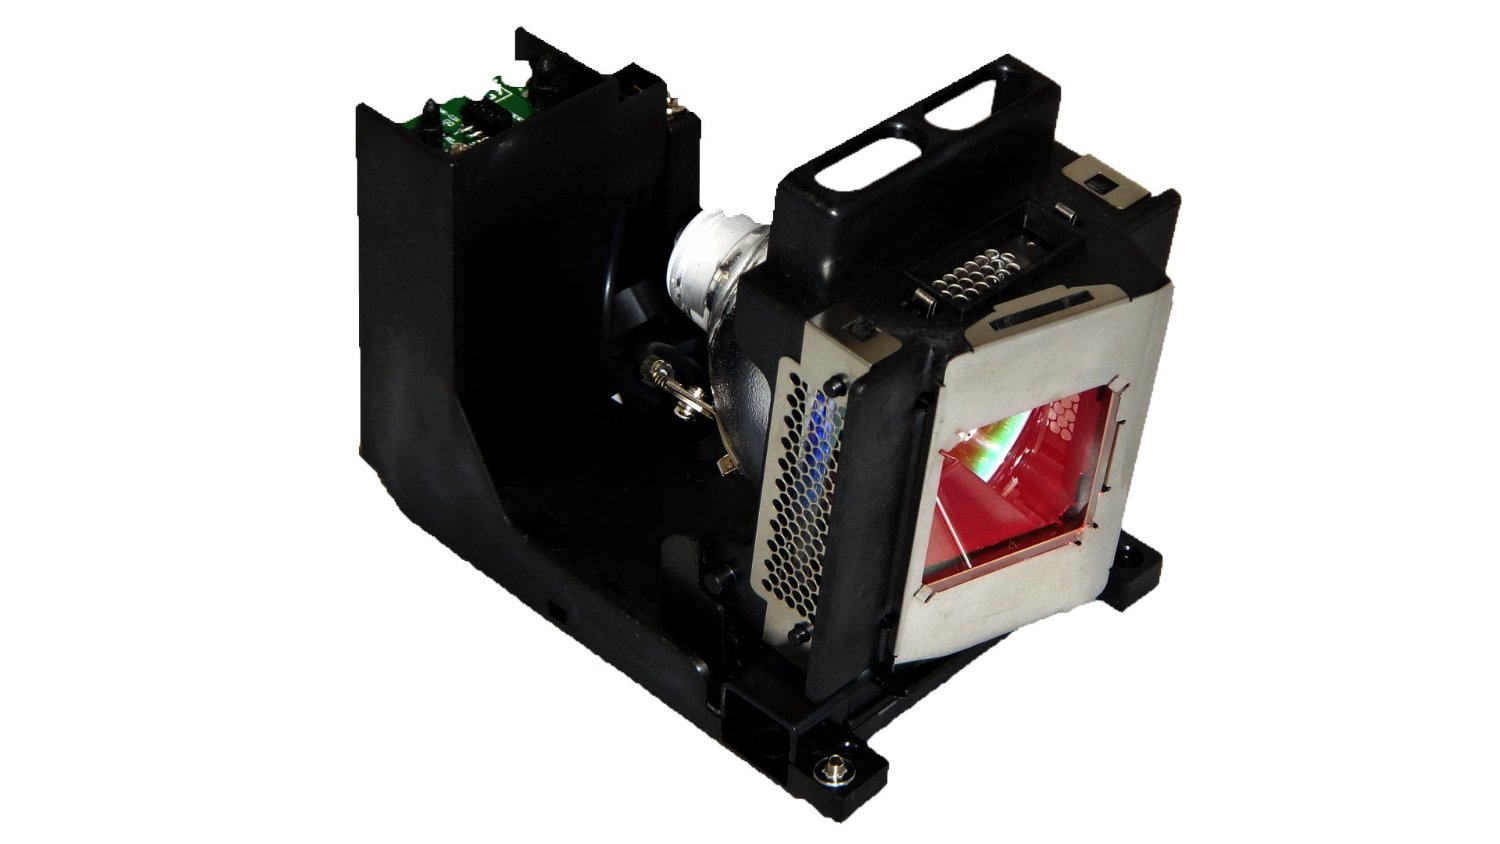 003-120504-01 Christie Projector Lamp Replacement. Projector Lamp Assembly with High Quality Genuine Original Philips UHP Bulb